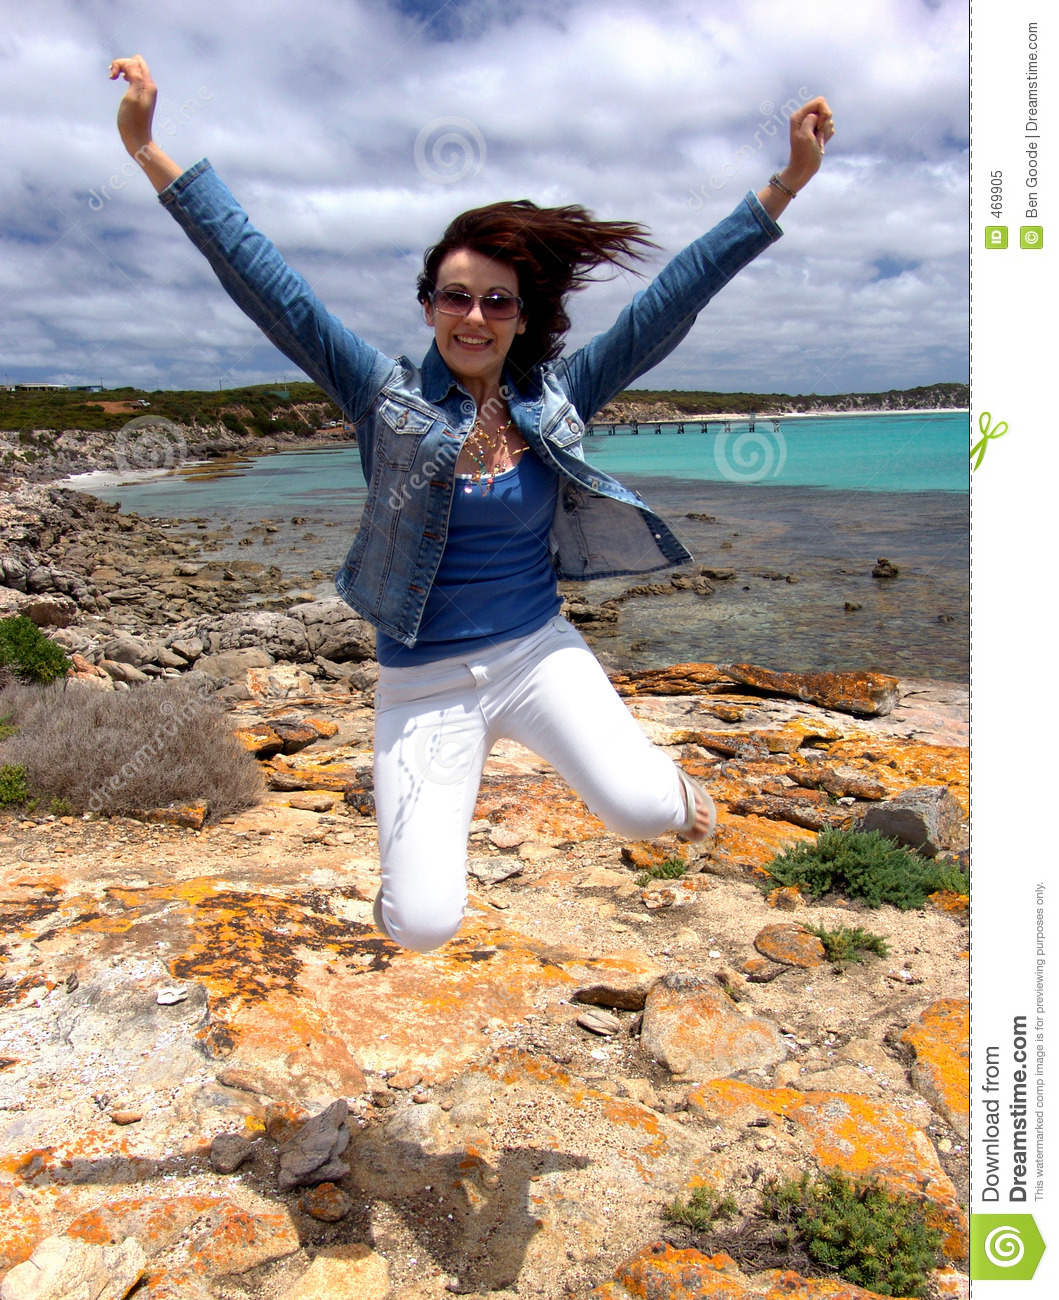 jump for joy royalty free stock photo image 469905